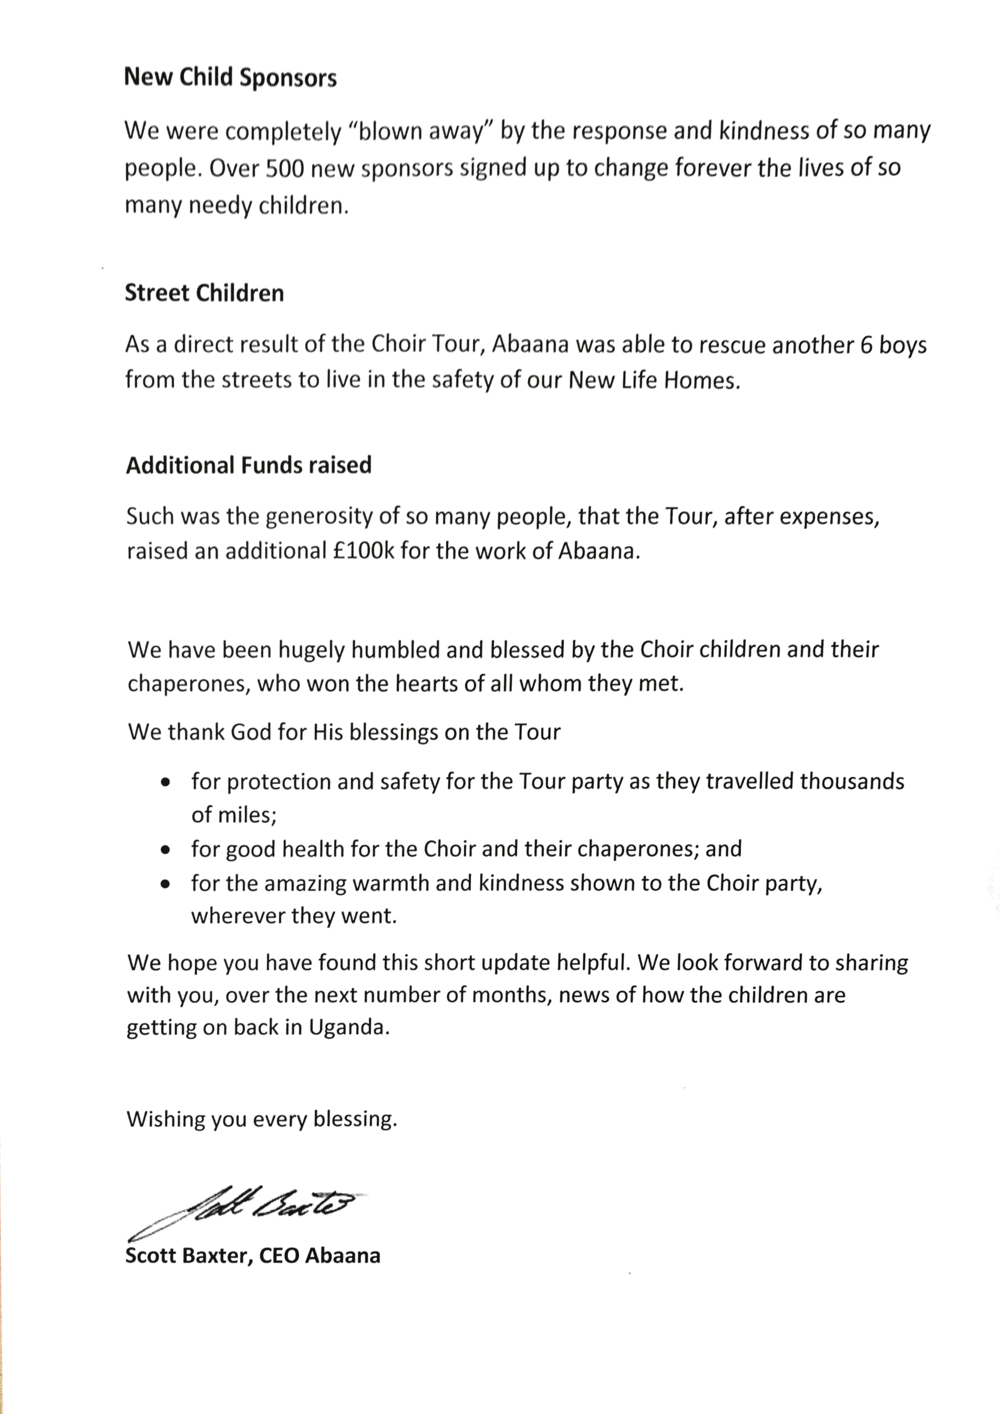 abaana update drung larah redhills church